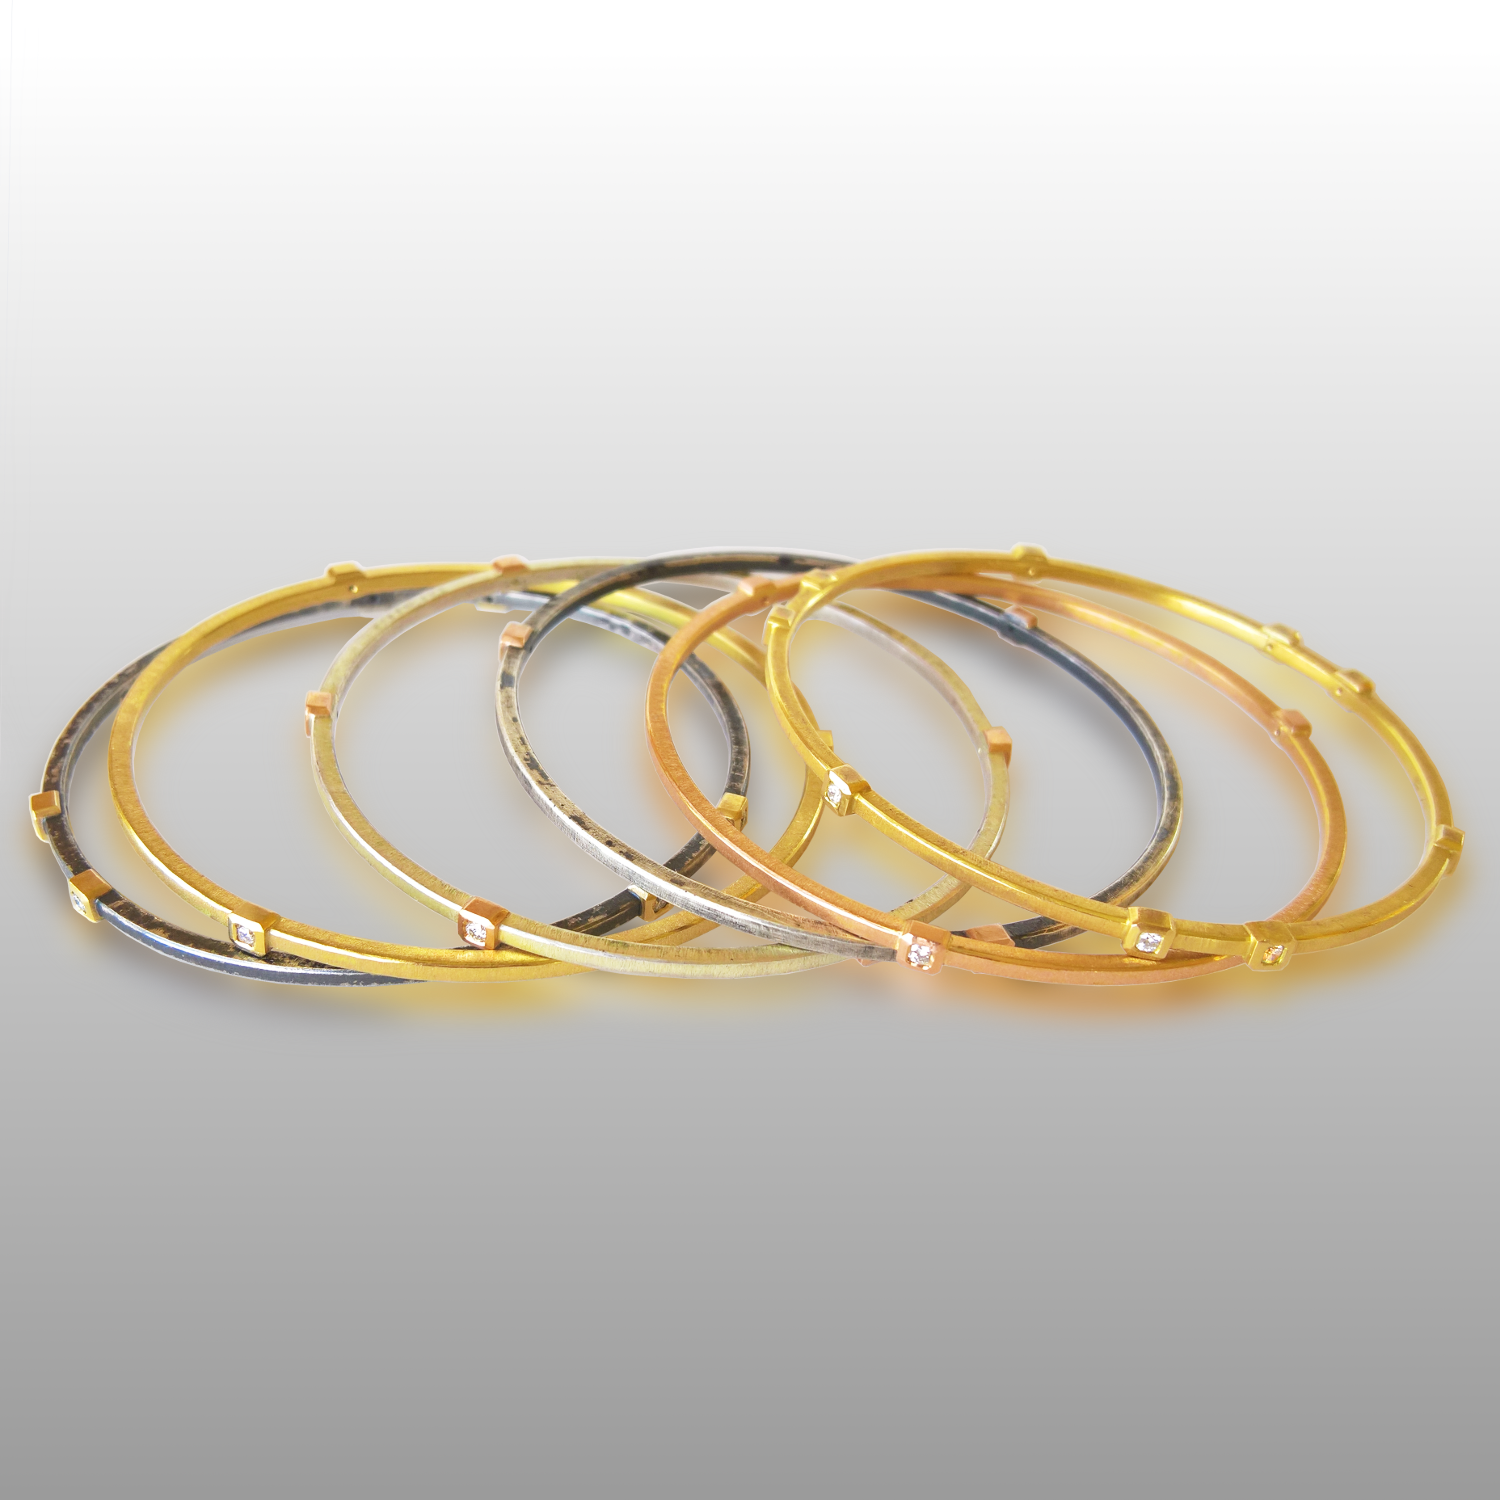 Stackable Diamond Bangles in 18k Gold and Silver by Pratima Design Fine Art Jewelry Maui